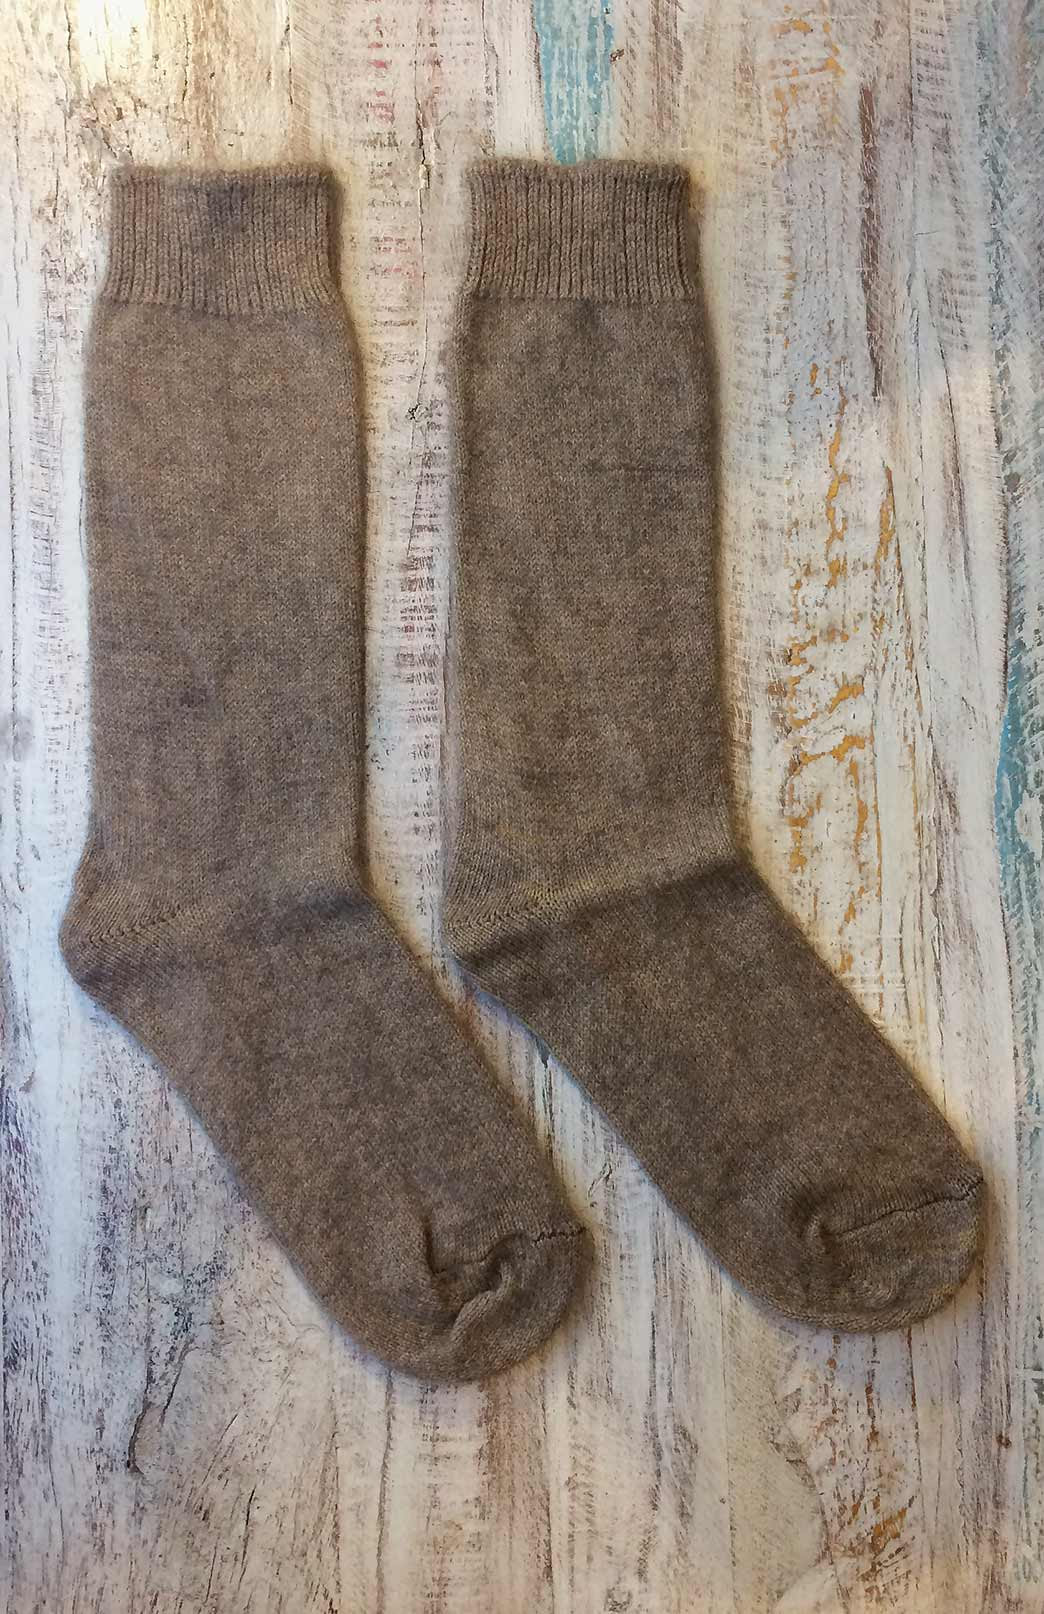 Merino & Wallaby Blend Socks - Merino Wool and Wallaby Blend Thermal Socks - Smitten Merino Tasmania Australia